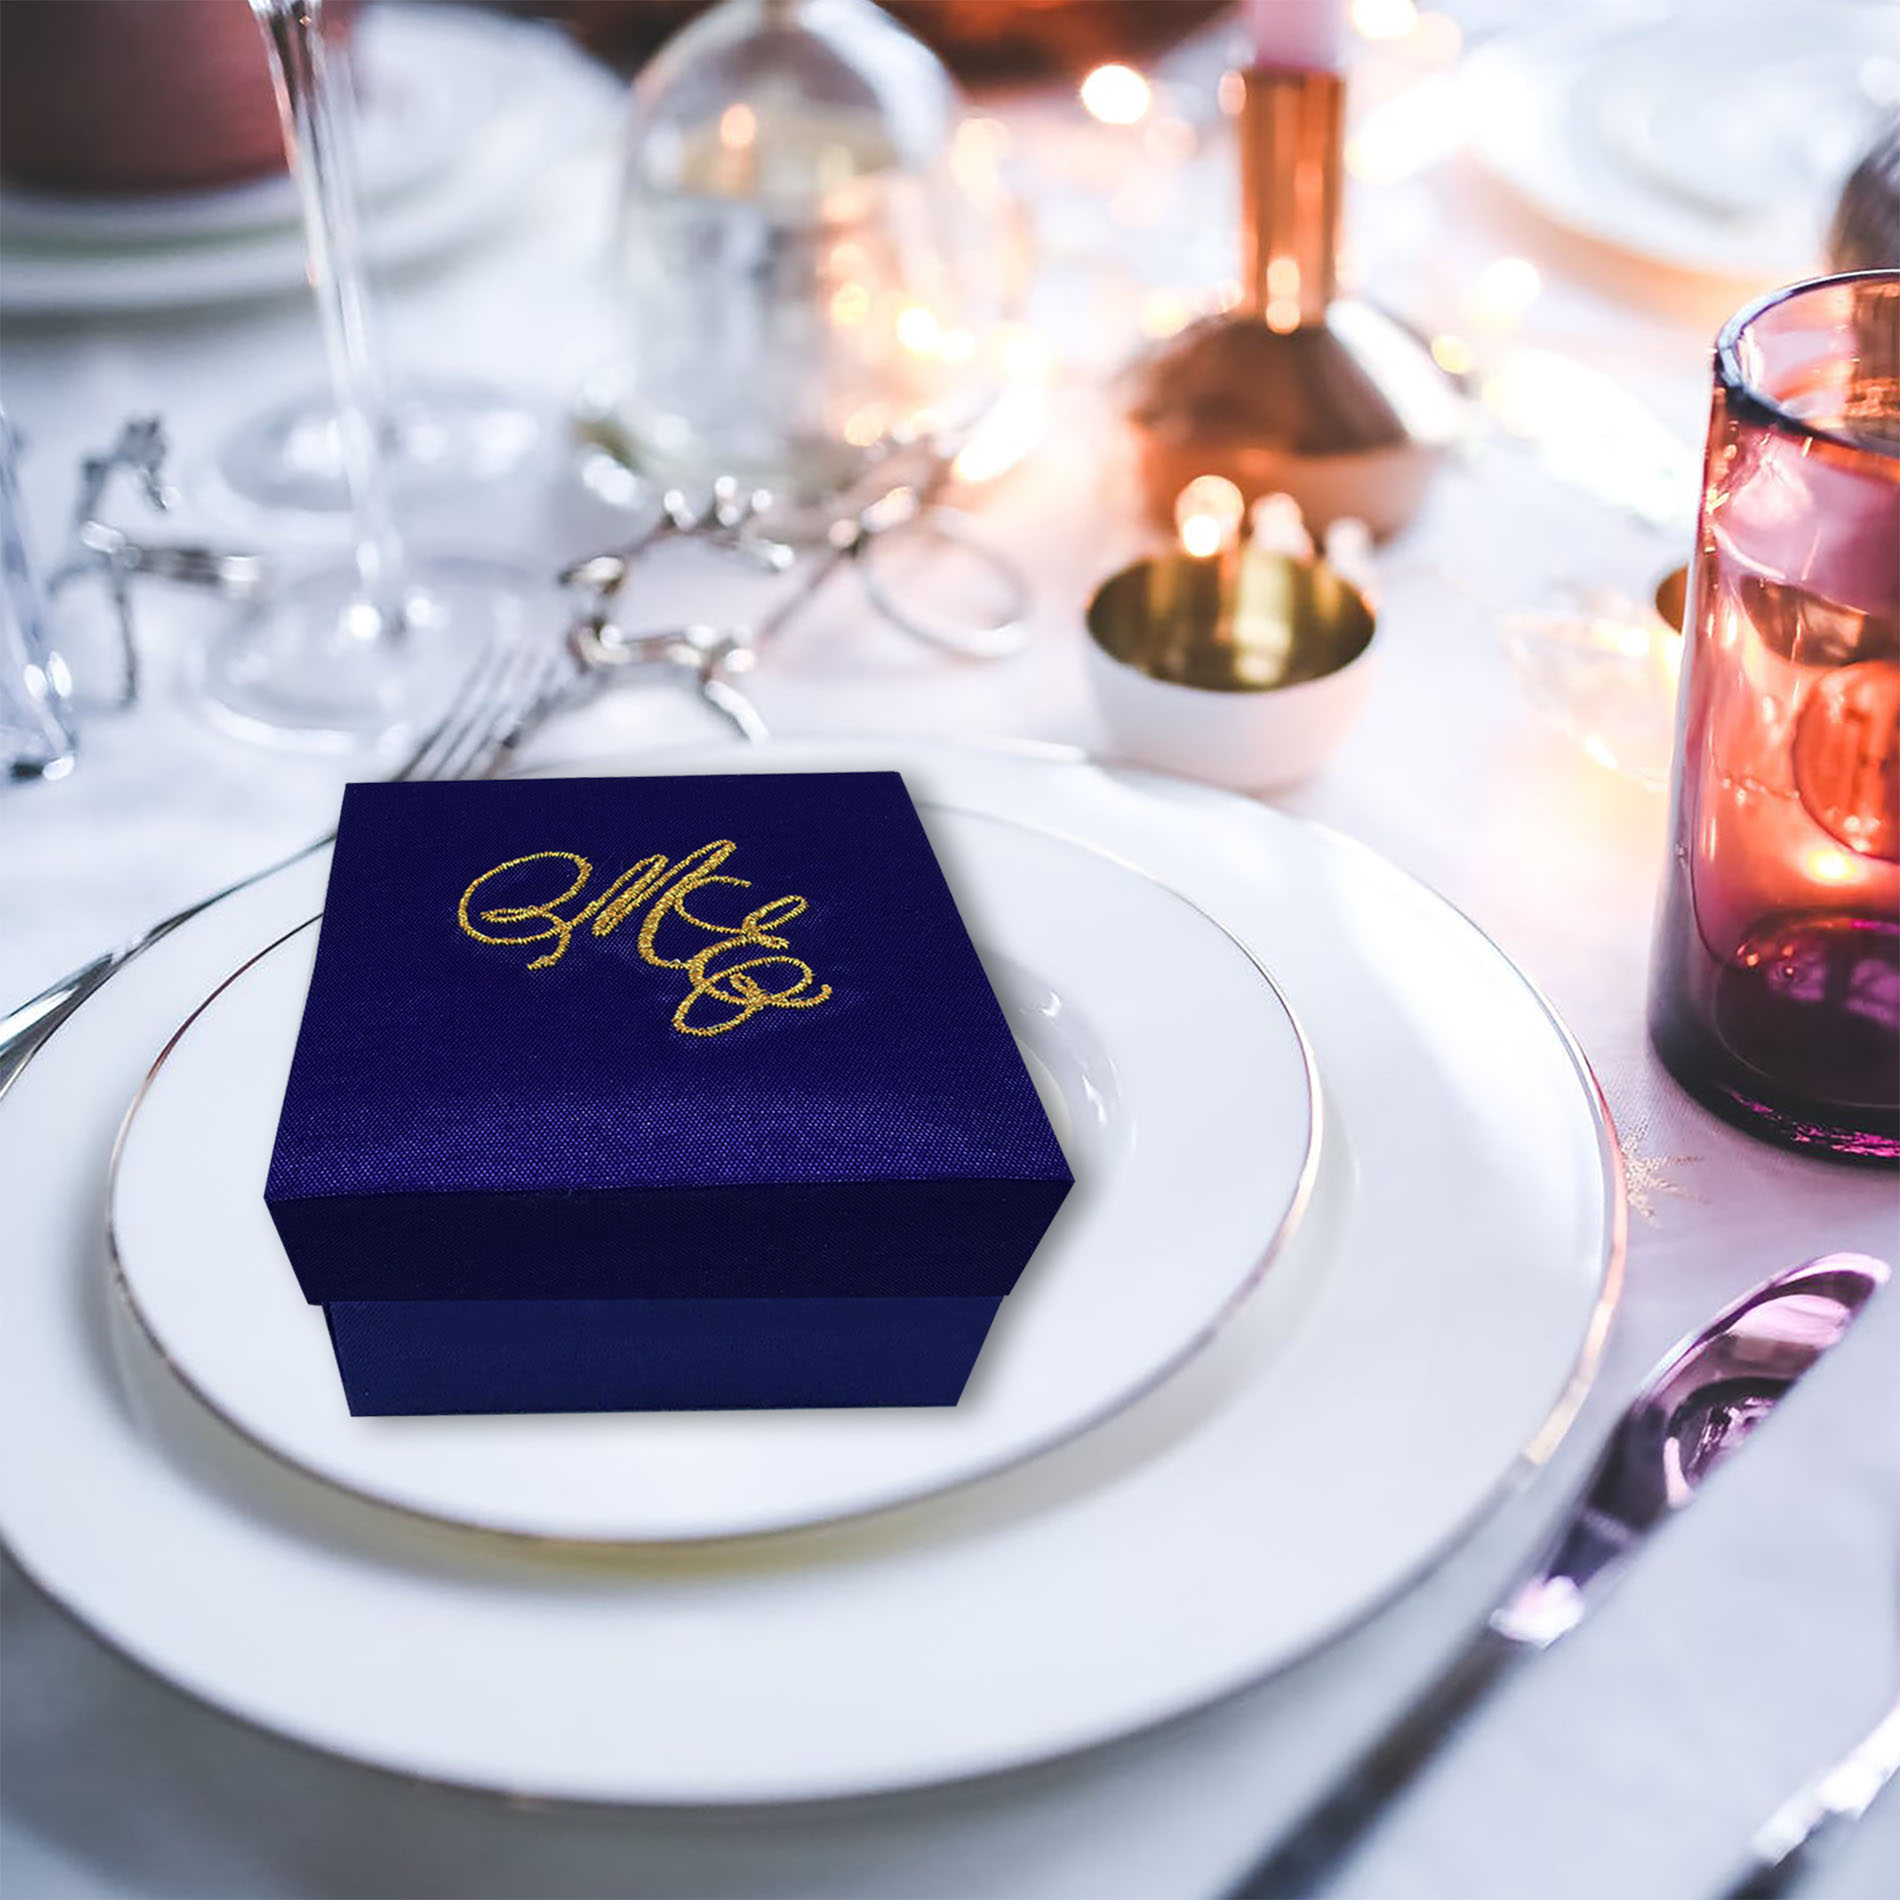 Personalized silk favor box for wedding with monogram embroidery